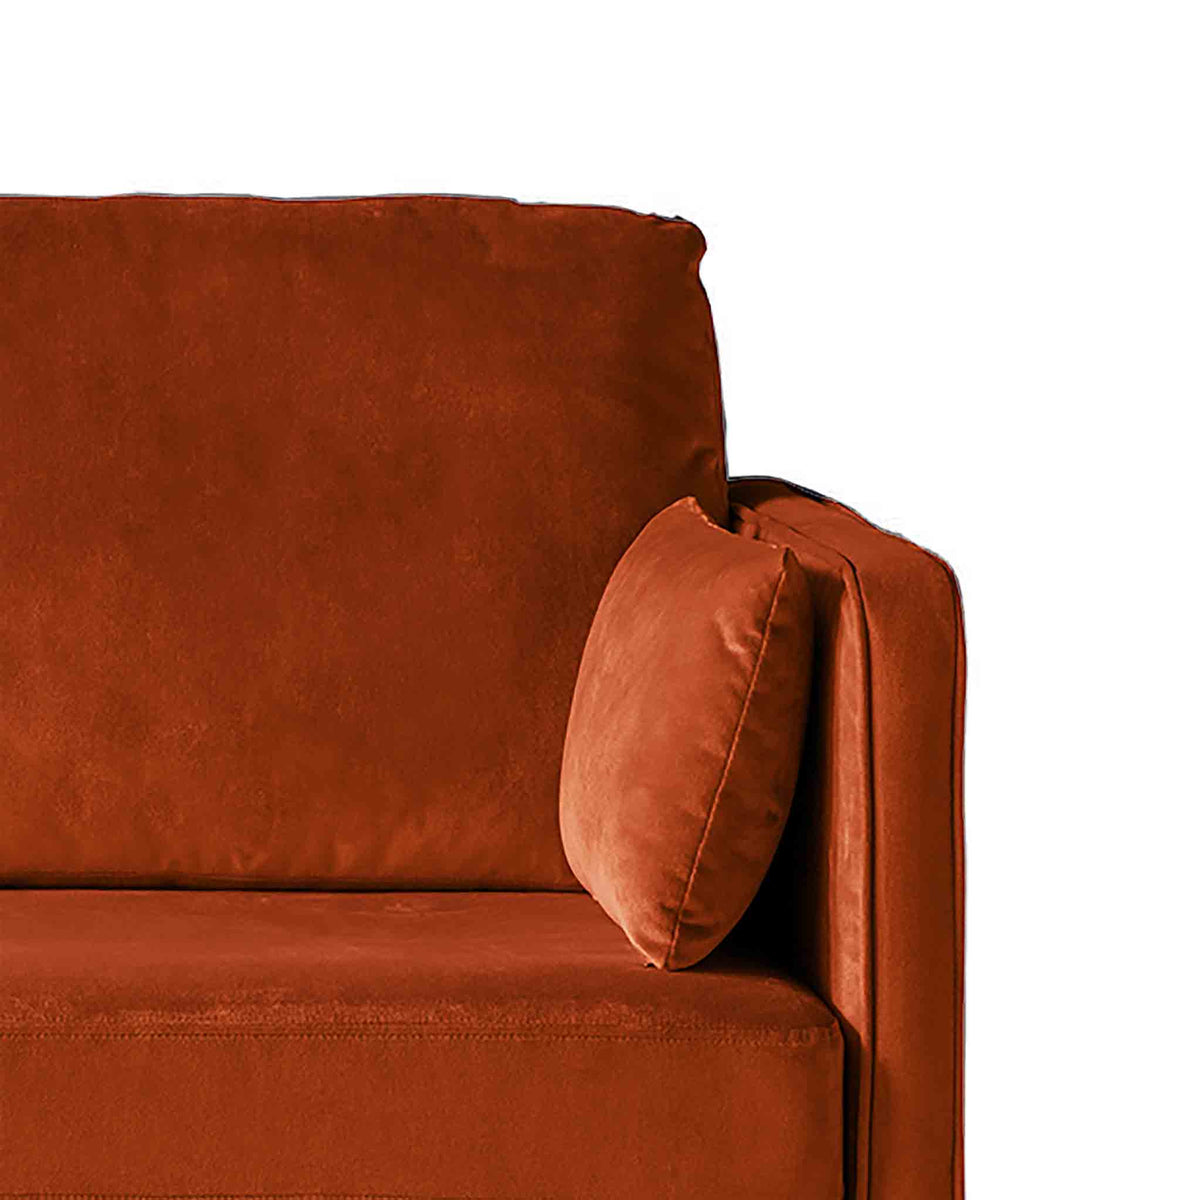 Anton Apricot 2 Seater Sofa - Close up of arm rest on sofa